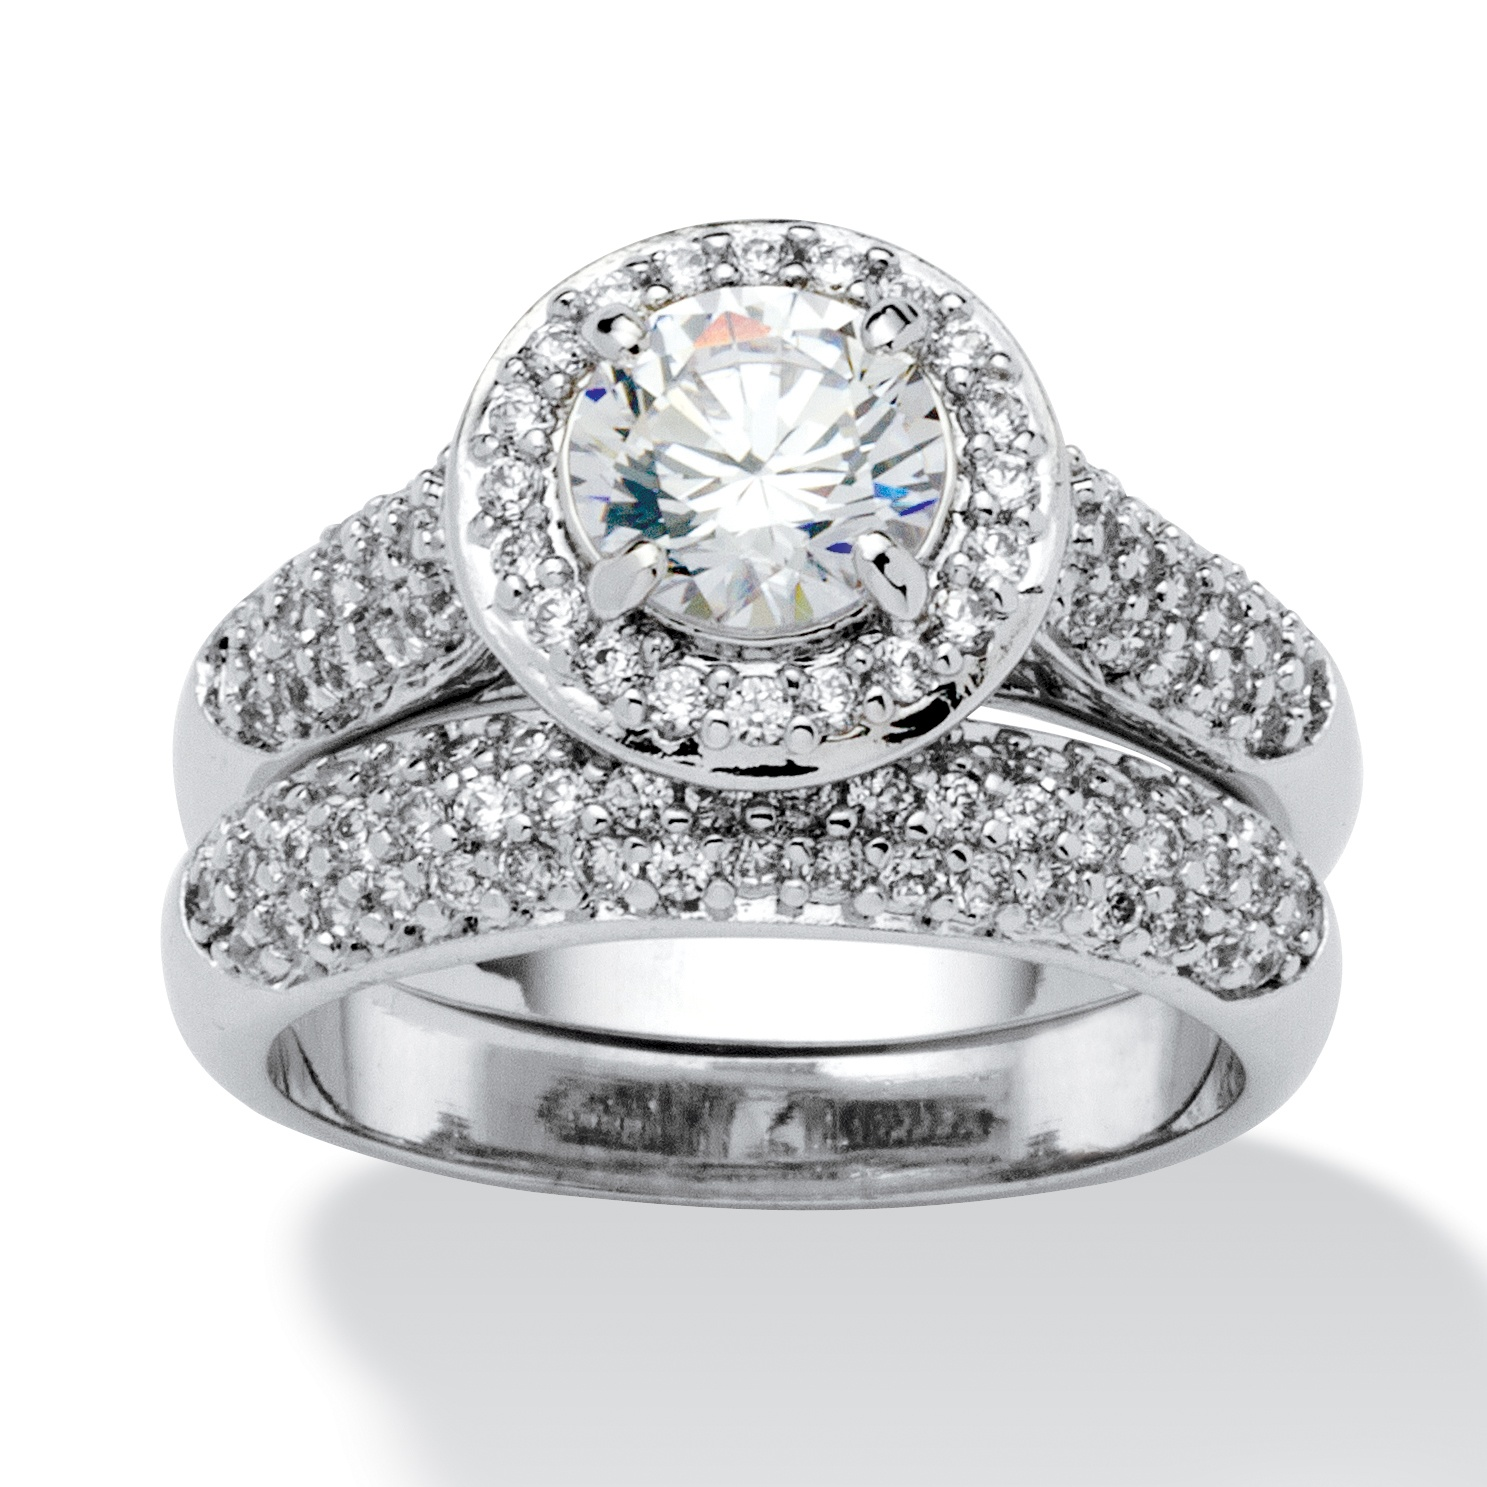 2.30 TCW Round Cubic Zirconia Pave Platinum-Plated Bridal Engagement Ring Wedding Band Set